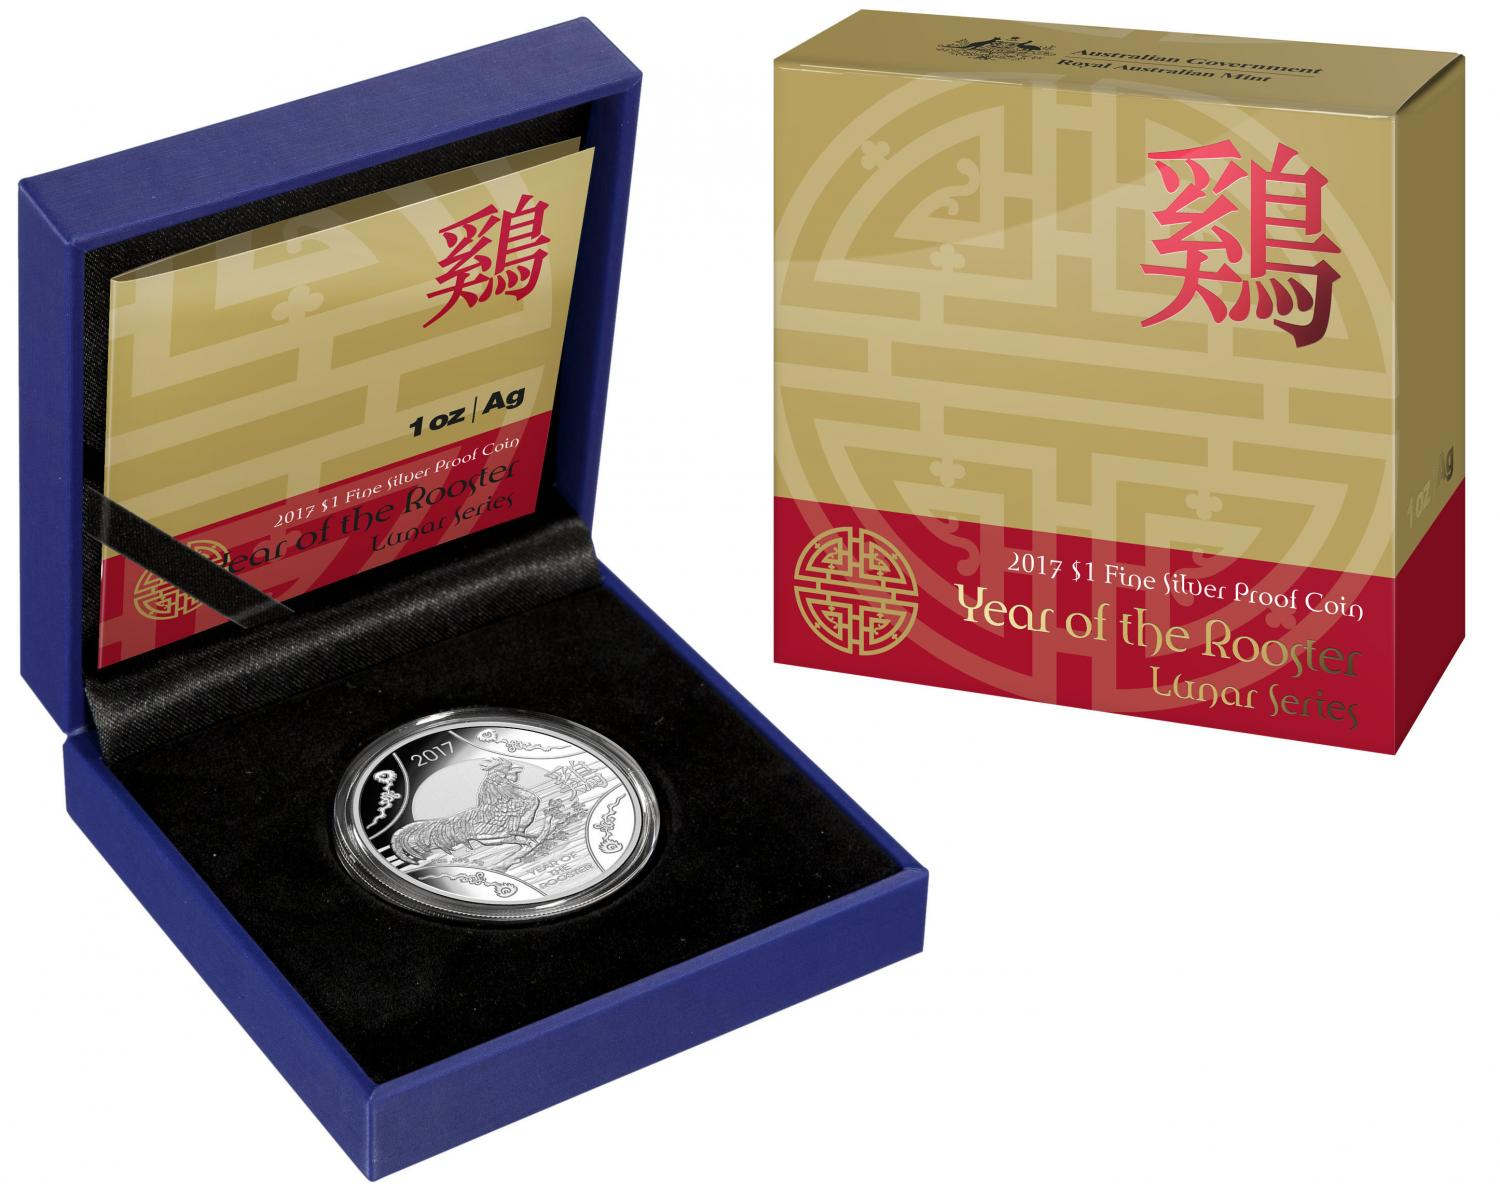 Thumbnail for 2017 Lunar Year of the Rooster $10.00 5oz Silver Proof Coin